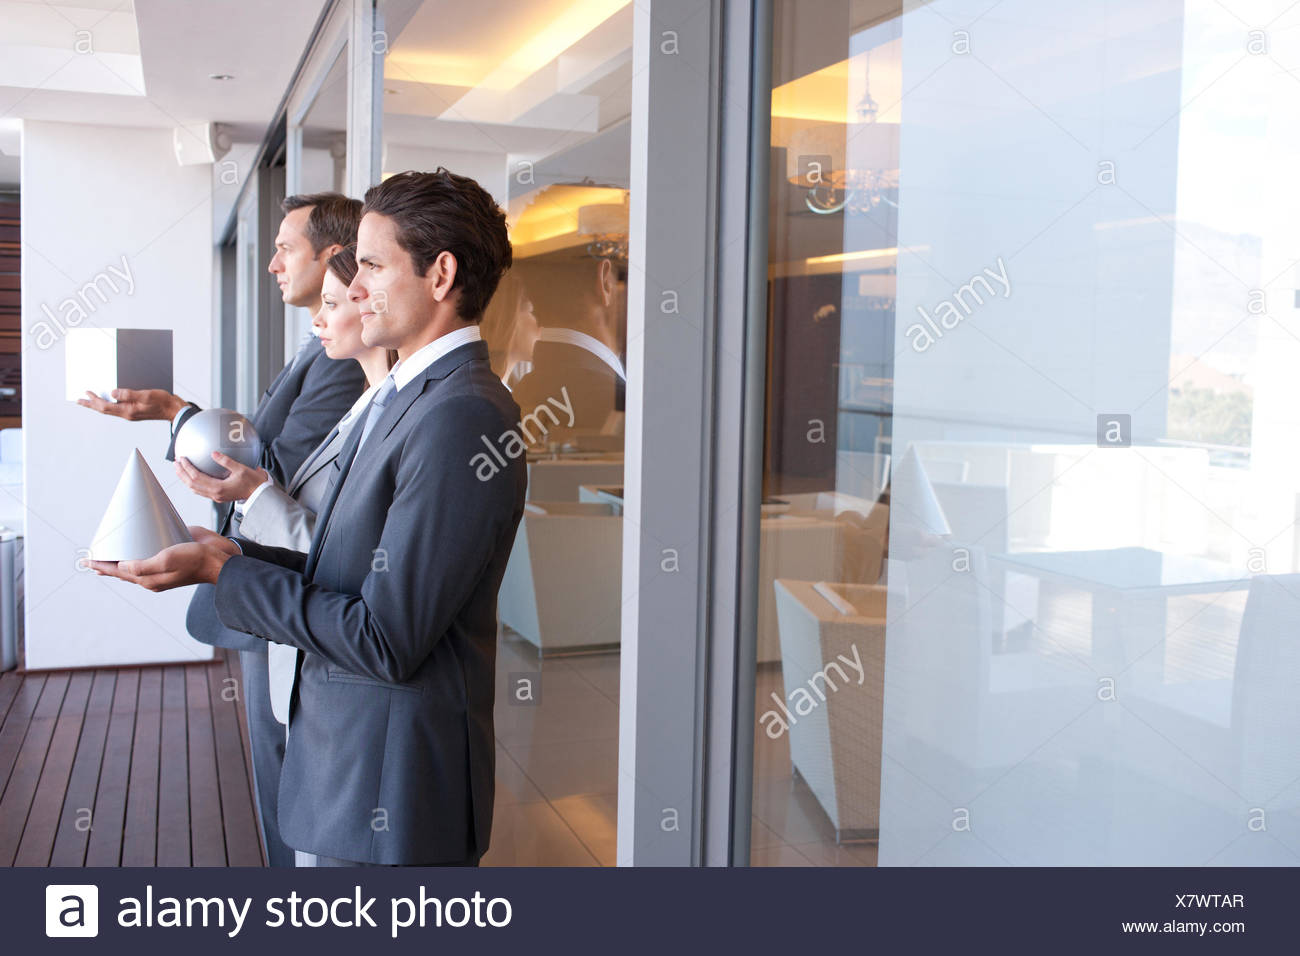 Business people holding geometric shapes - Stock Image